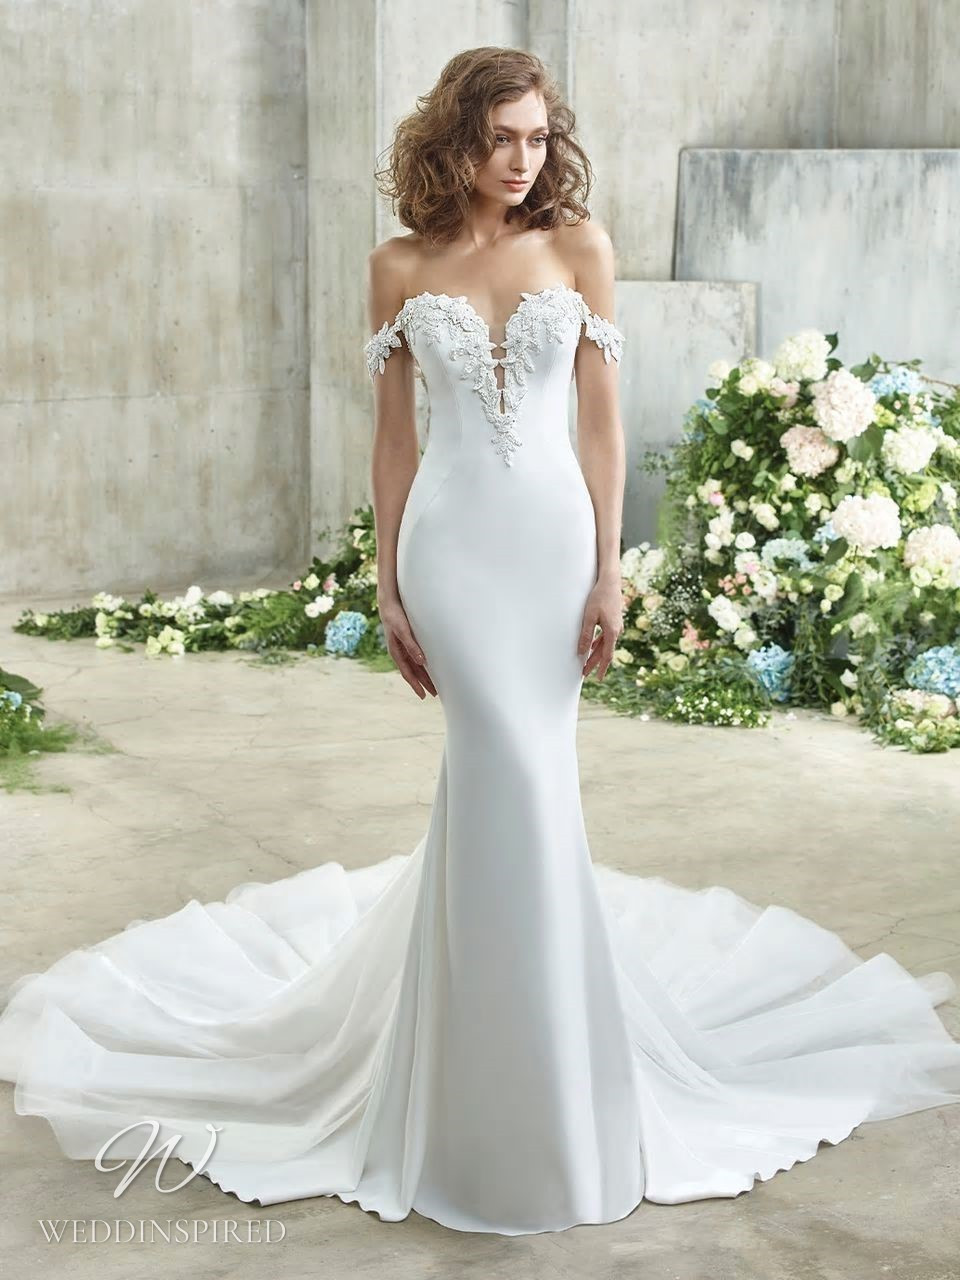 A Badgley Mischka off the shoulder mermaid wedding dress with a train and a sweetheart neckline